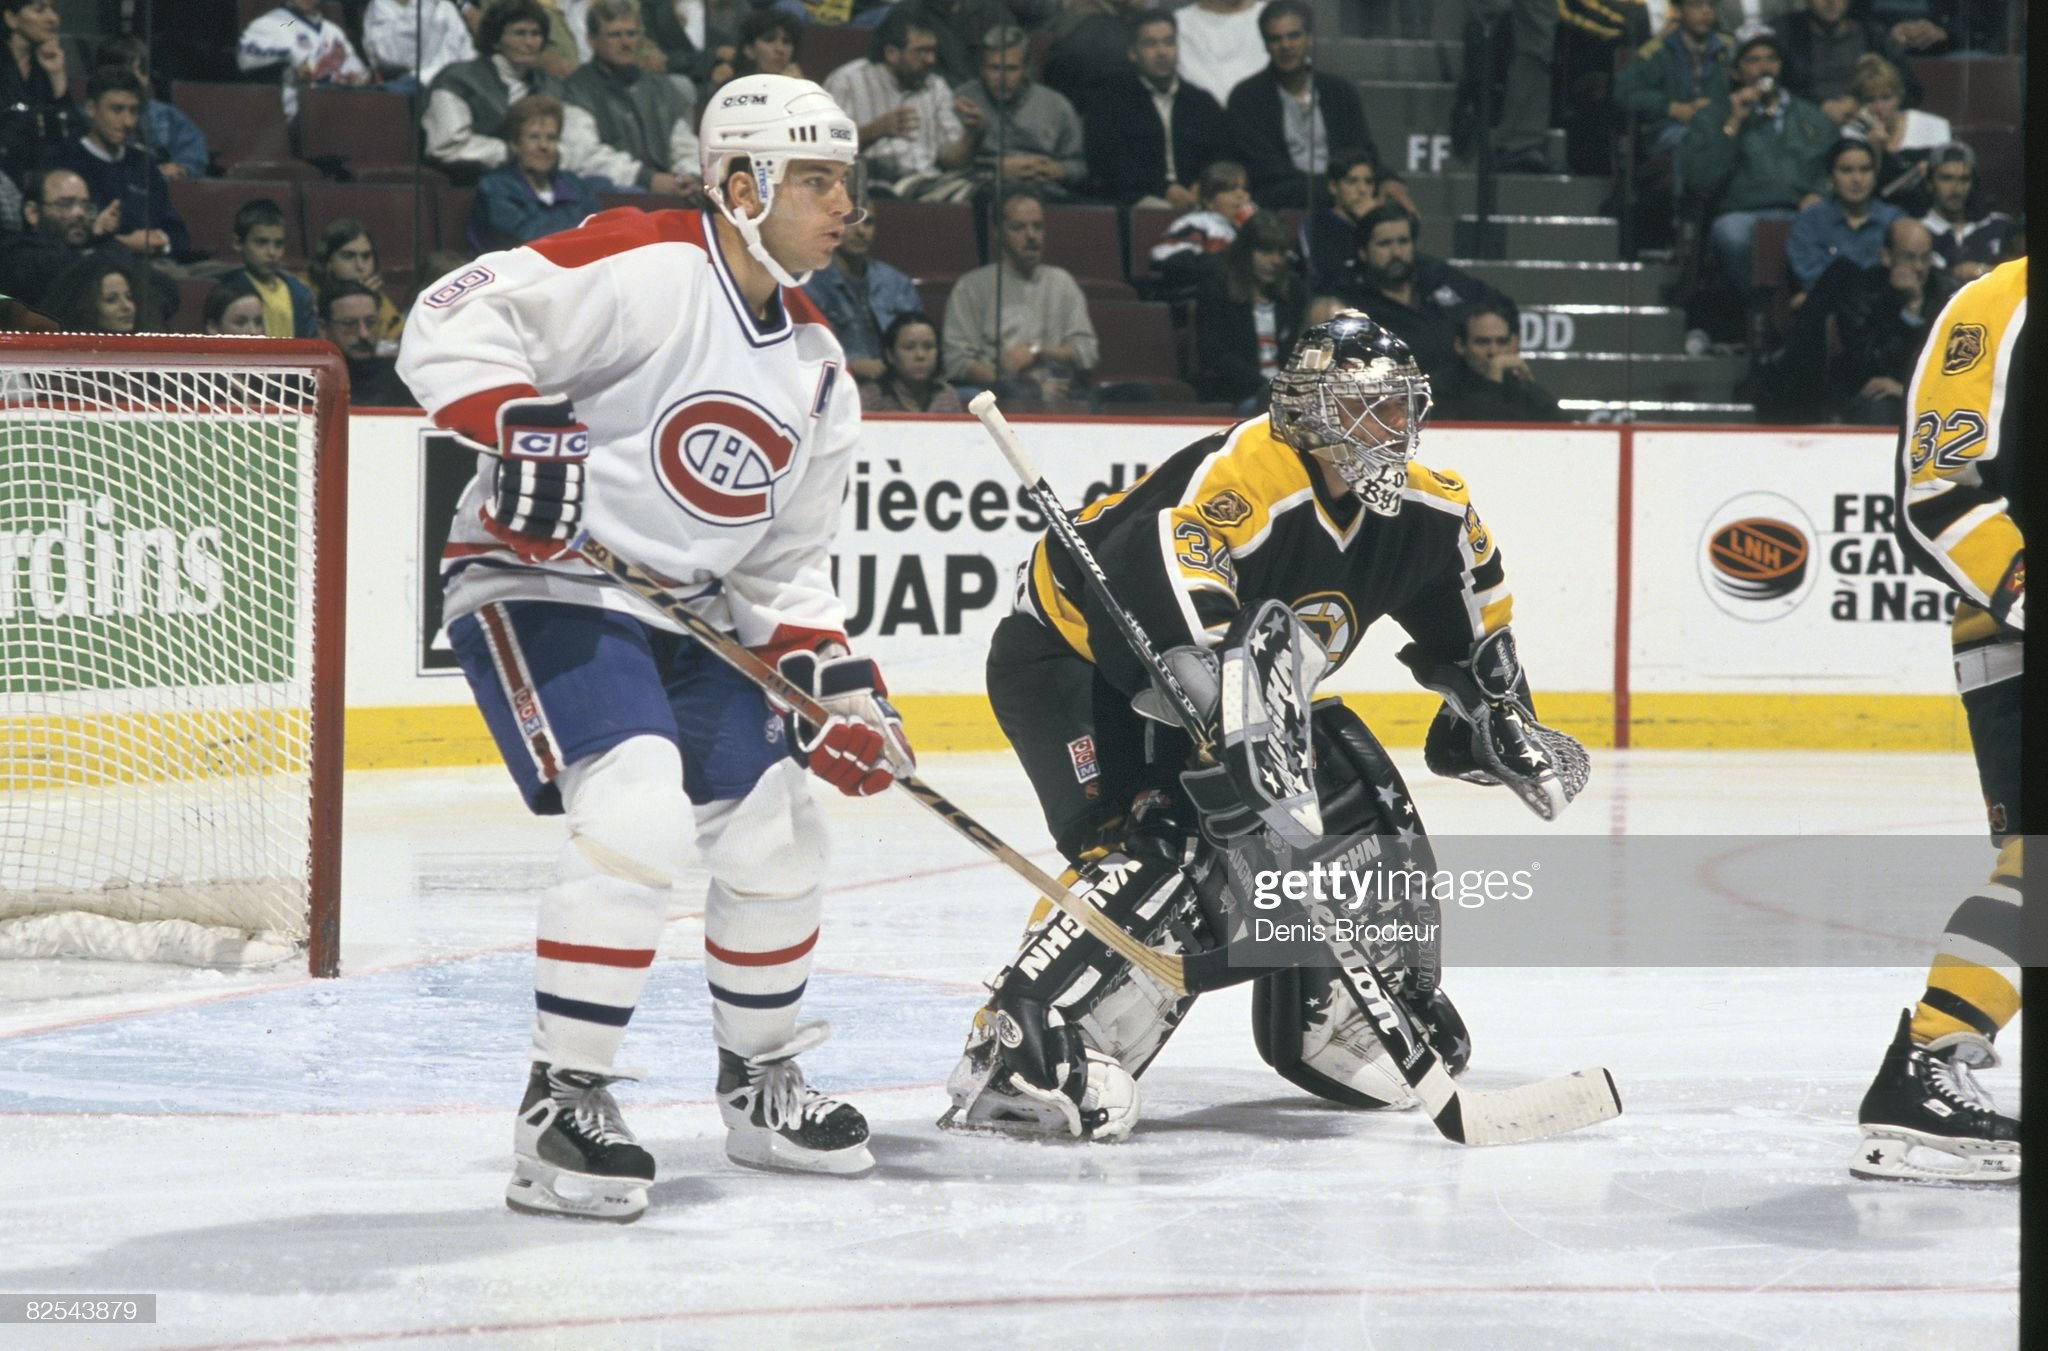 canadiens-forward-mark-recchi-alongside-